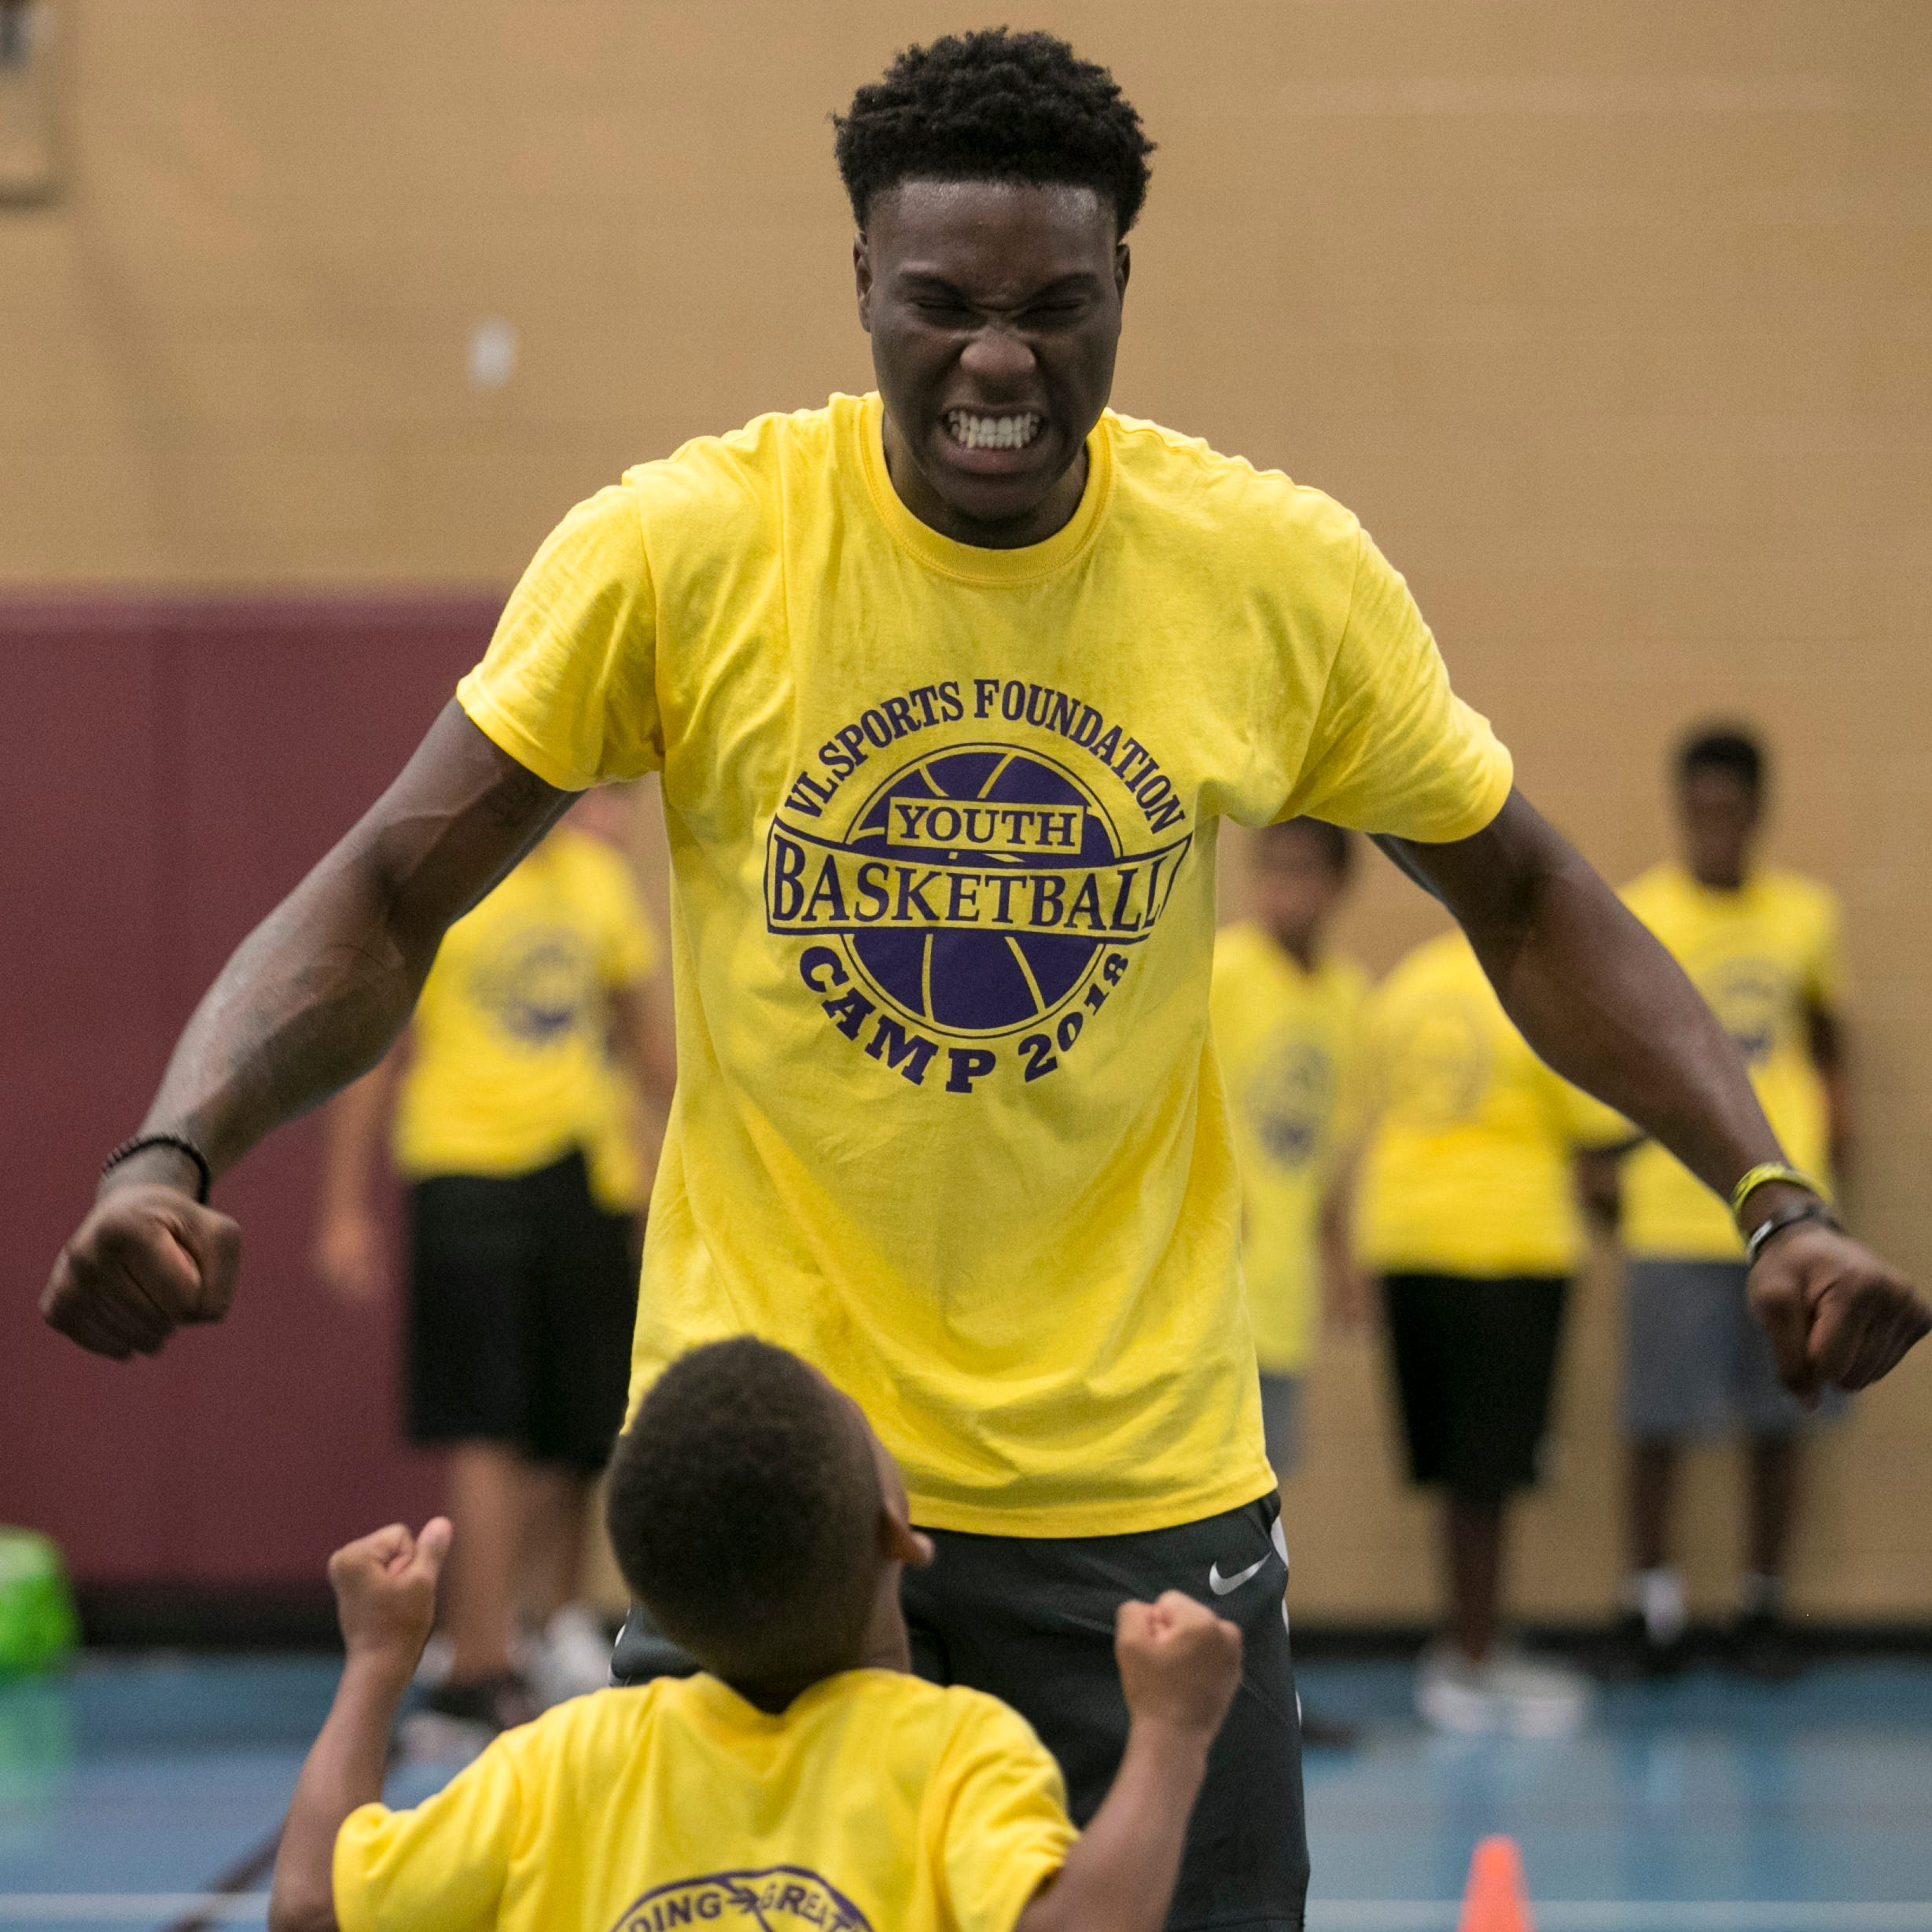 Emmitt Williams, Destanni Henderson bring array of smiles at Fort Myers youth basketball camp